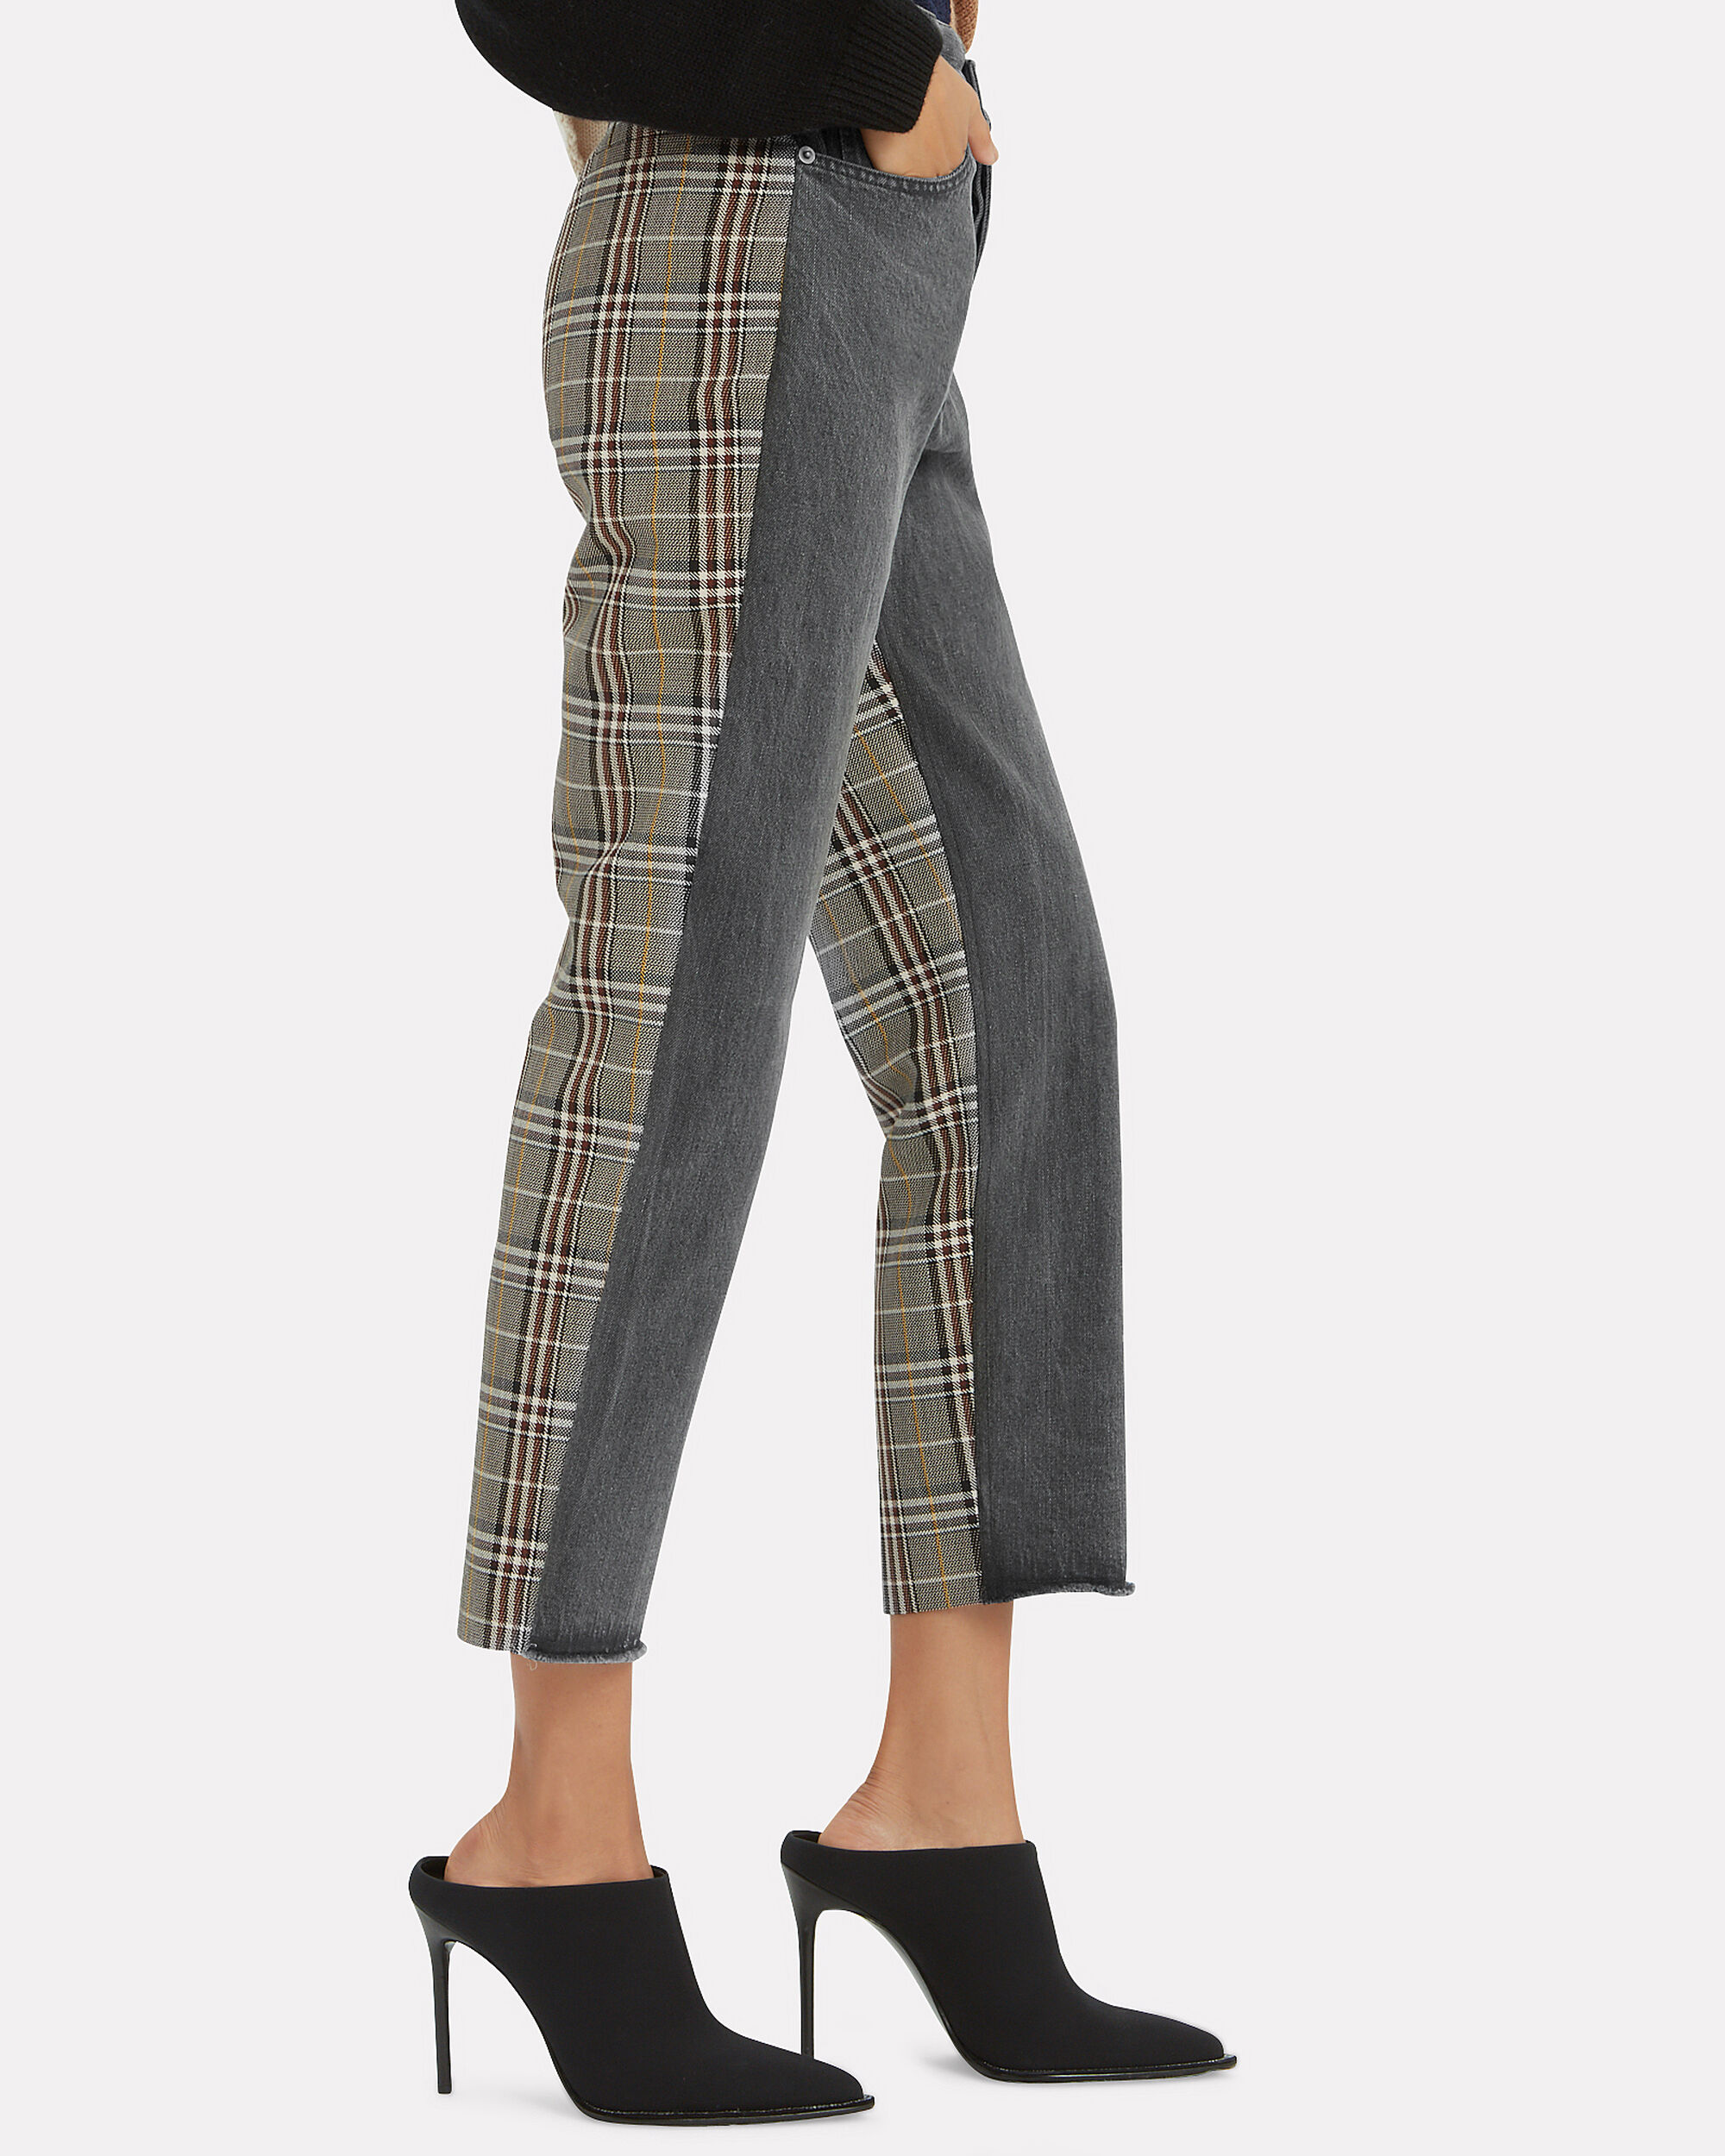 Half Black Half Plaid Jeans, BLACK, hi-res